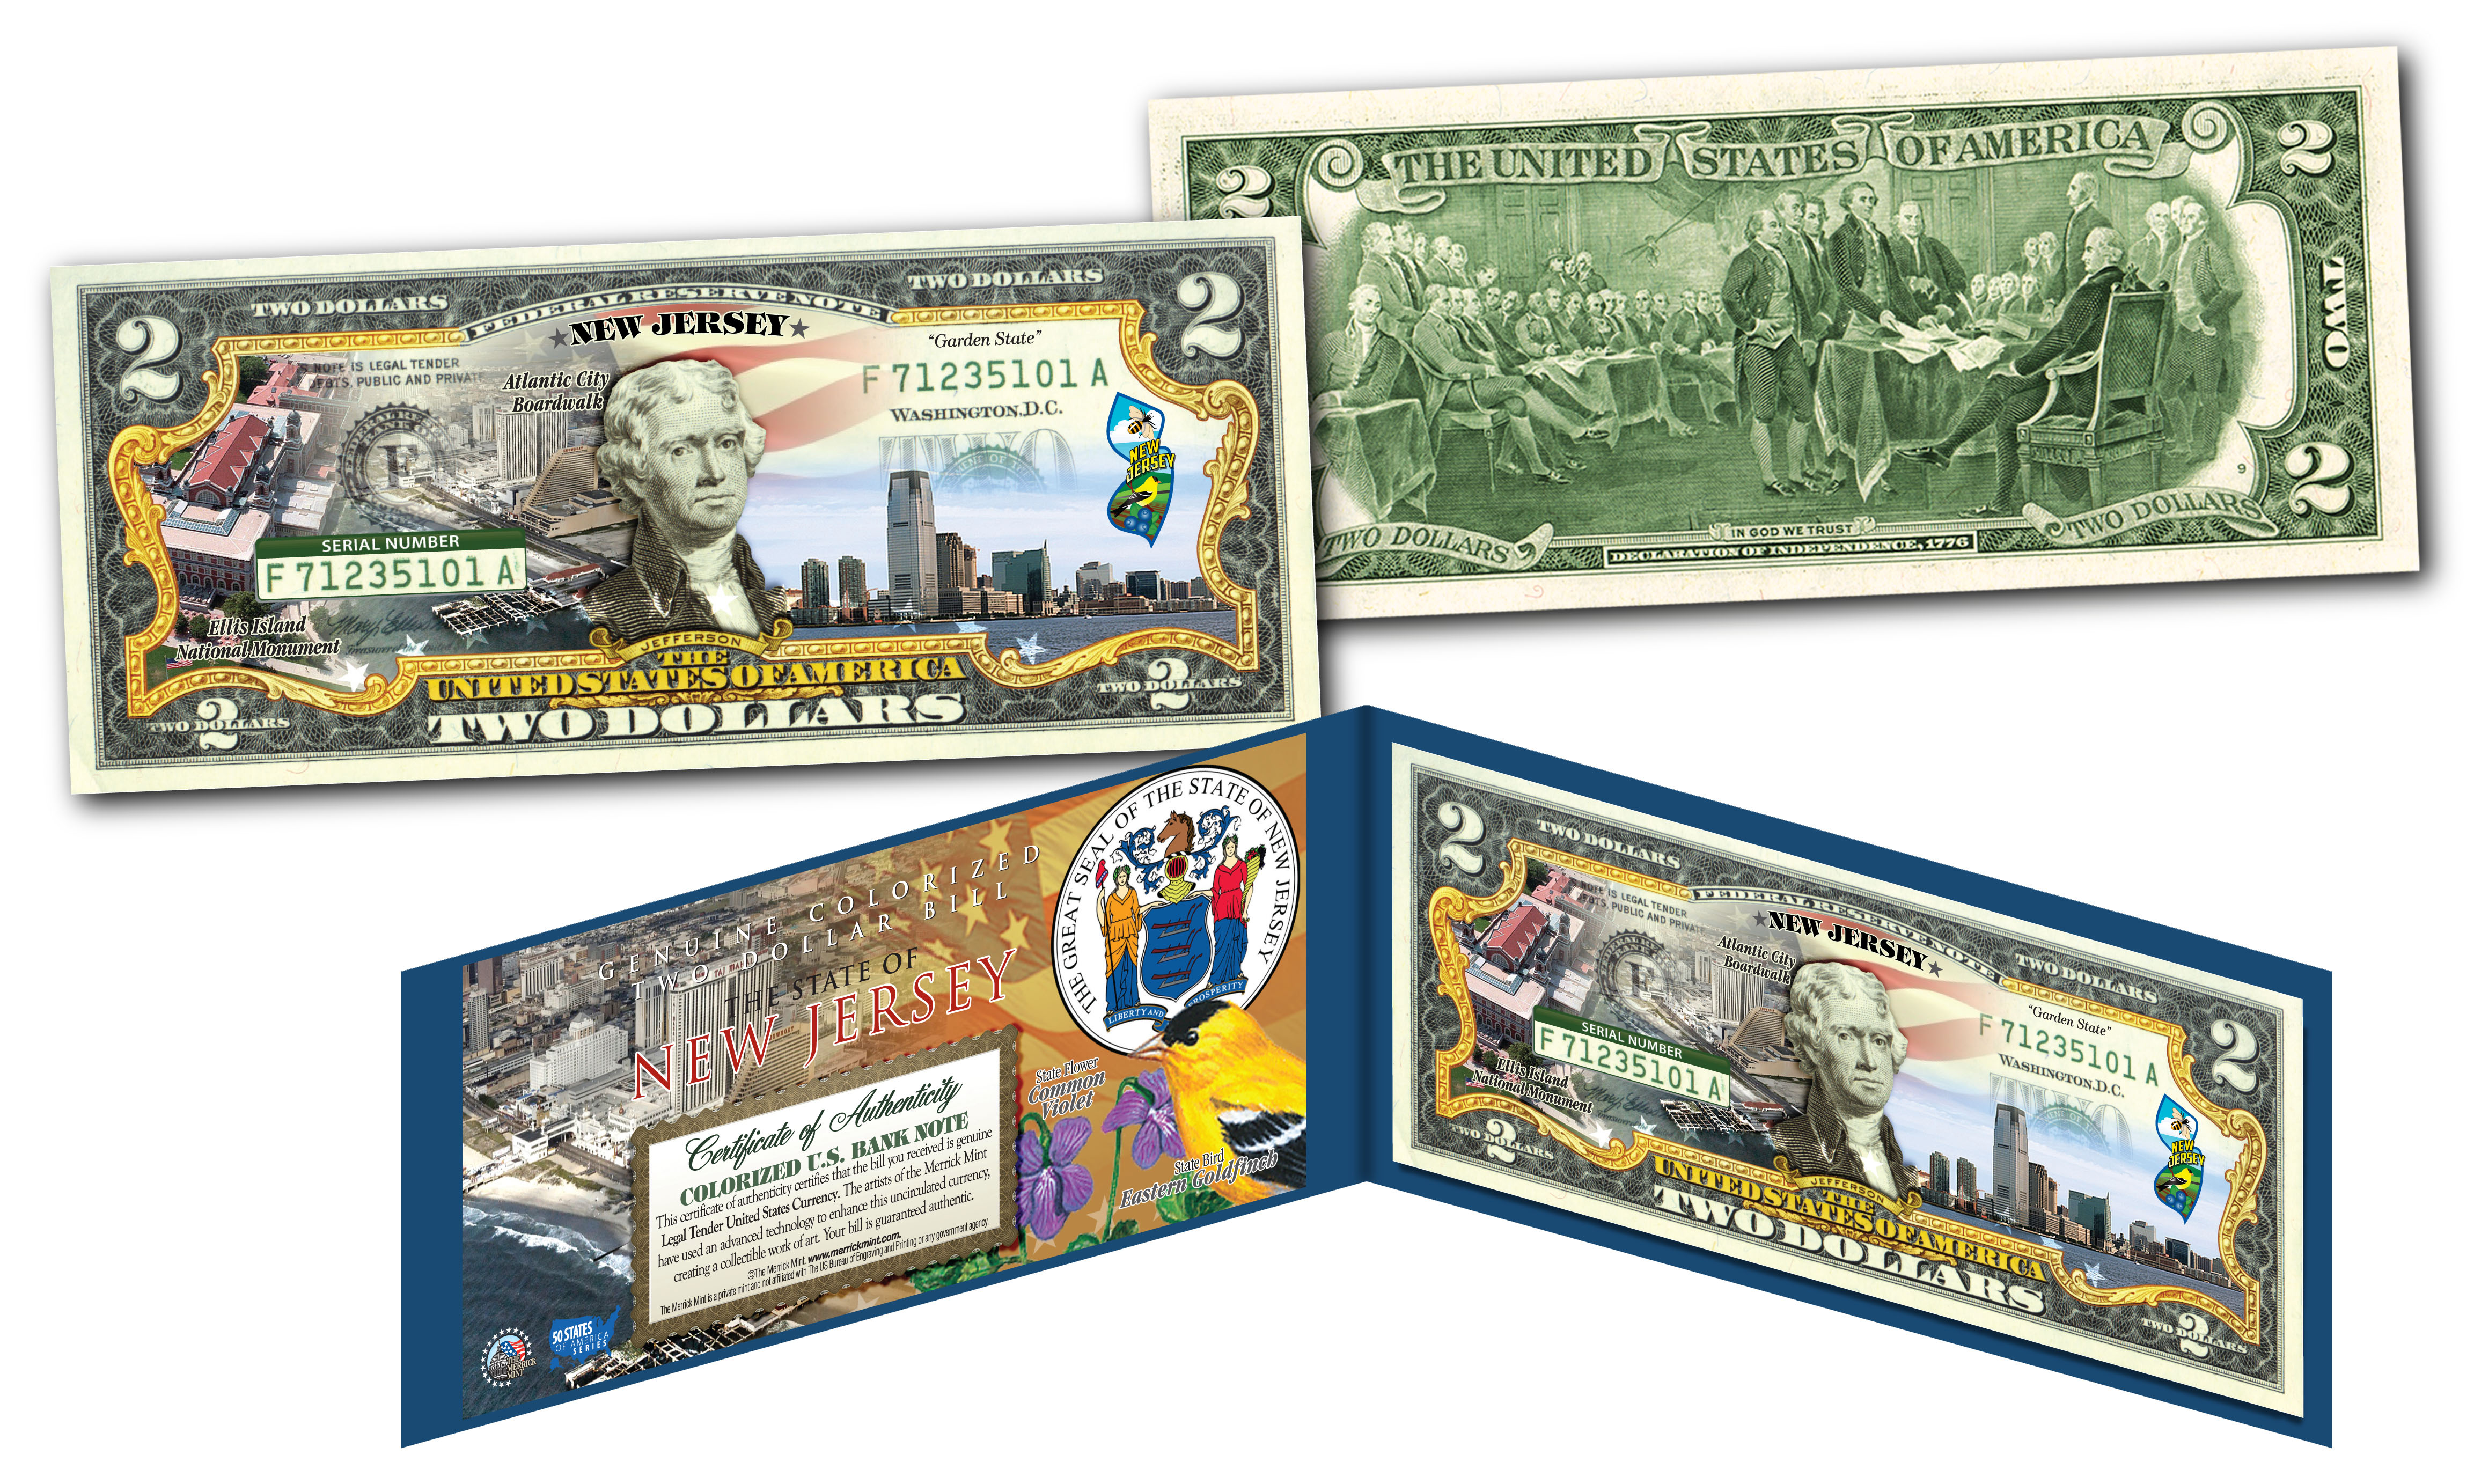 NEW JERSEY Genuine Legal Tender $2 Bill USA Honoring America/'s 50 States